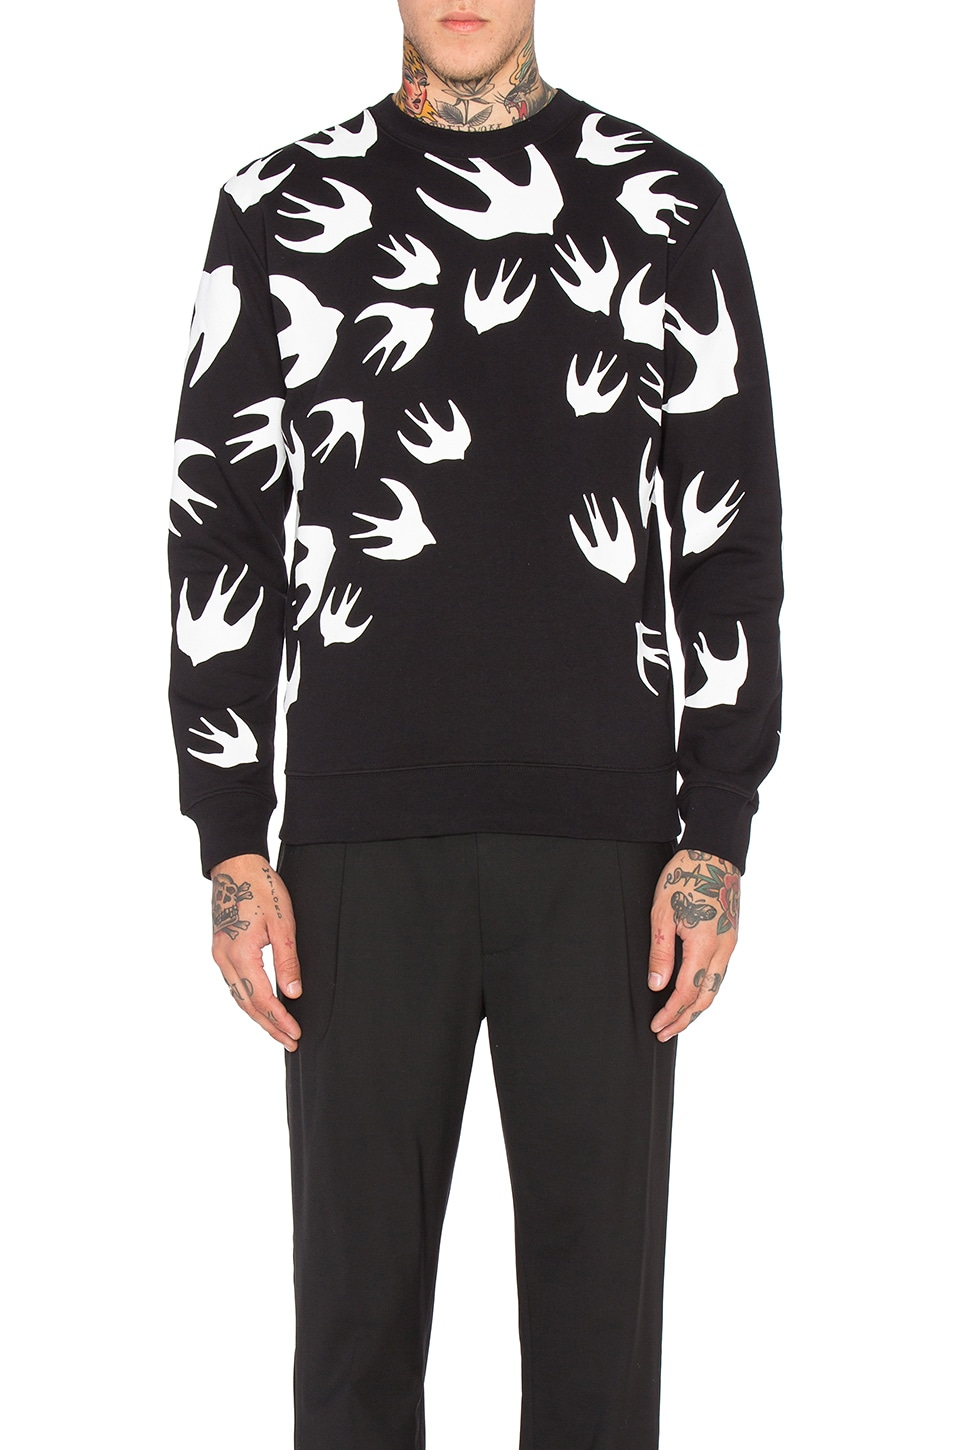 Photo of Clean Crew Neck by McQ Alexander McQueen men clothes